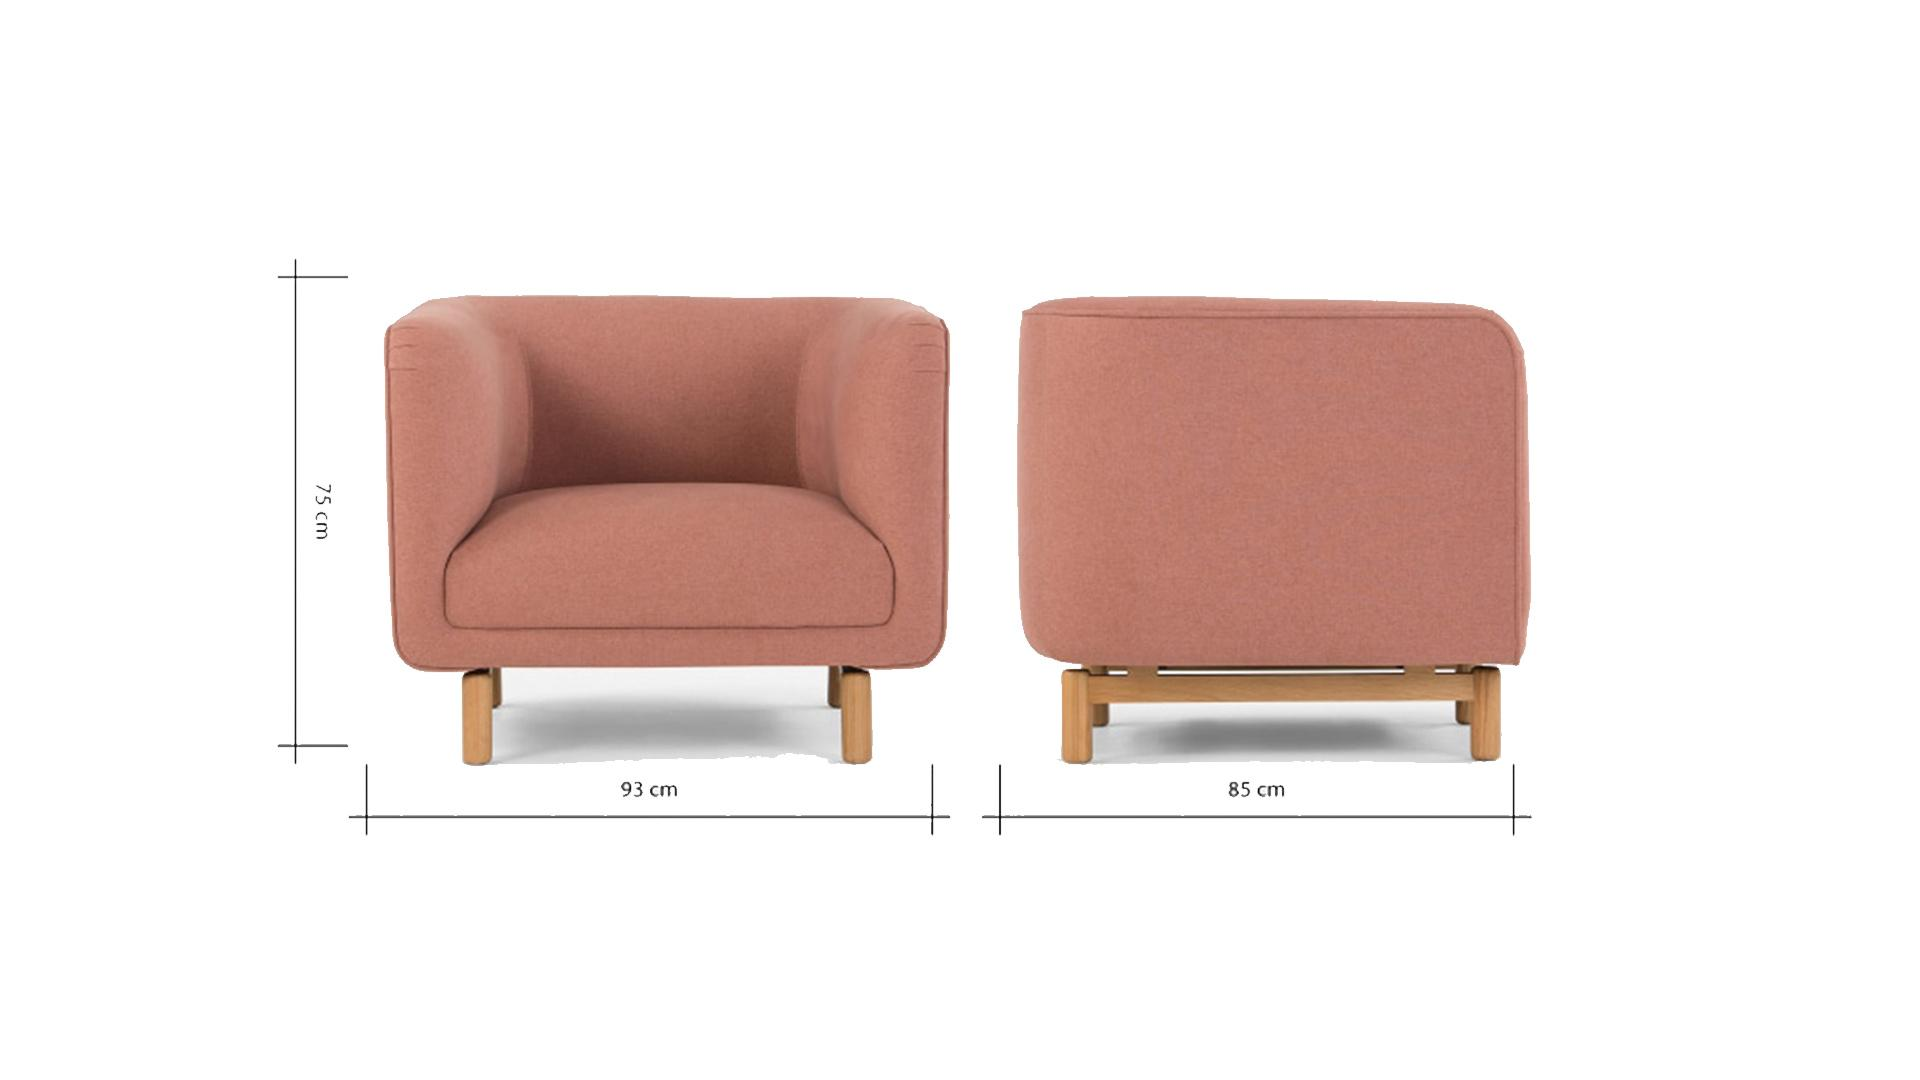 Tribeca Armchair In Dust Pink - Celebrity Big Brother 2017